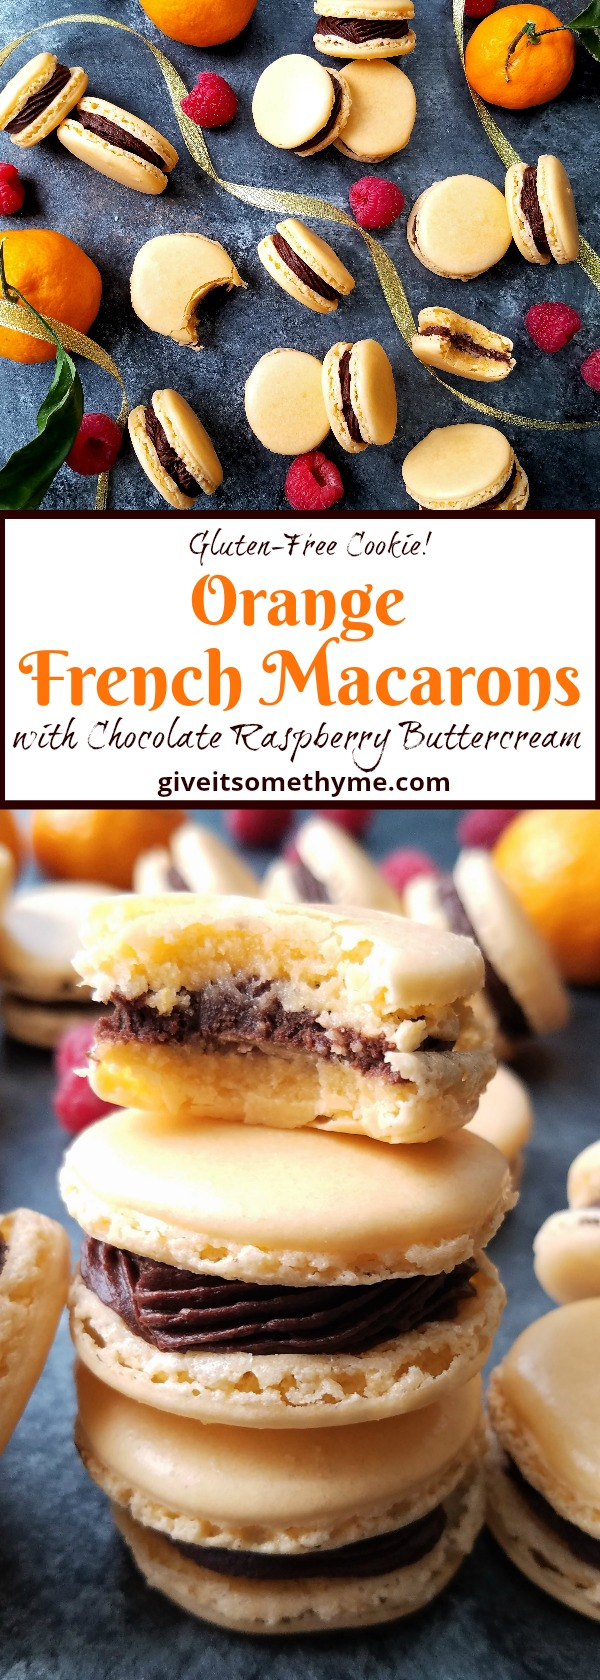 Orange French Macarons with Chocolate Raspberry Buttercream | Give it Some Thyme